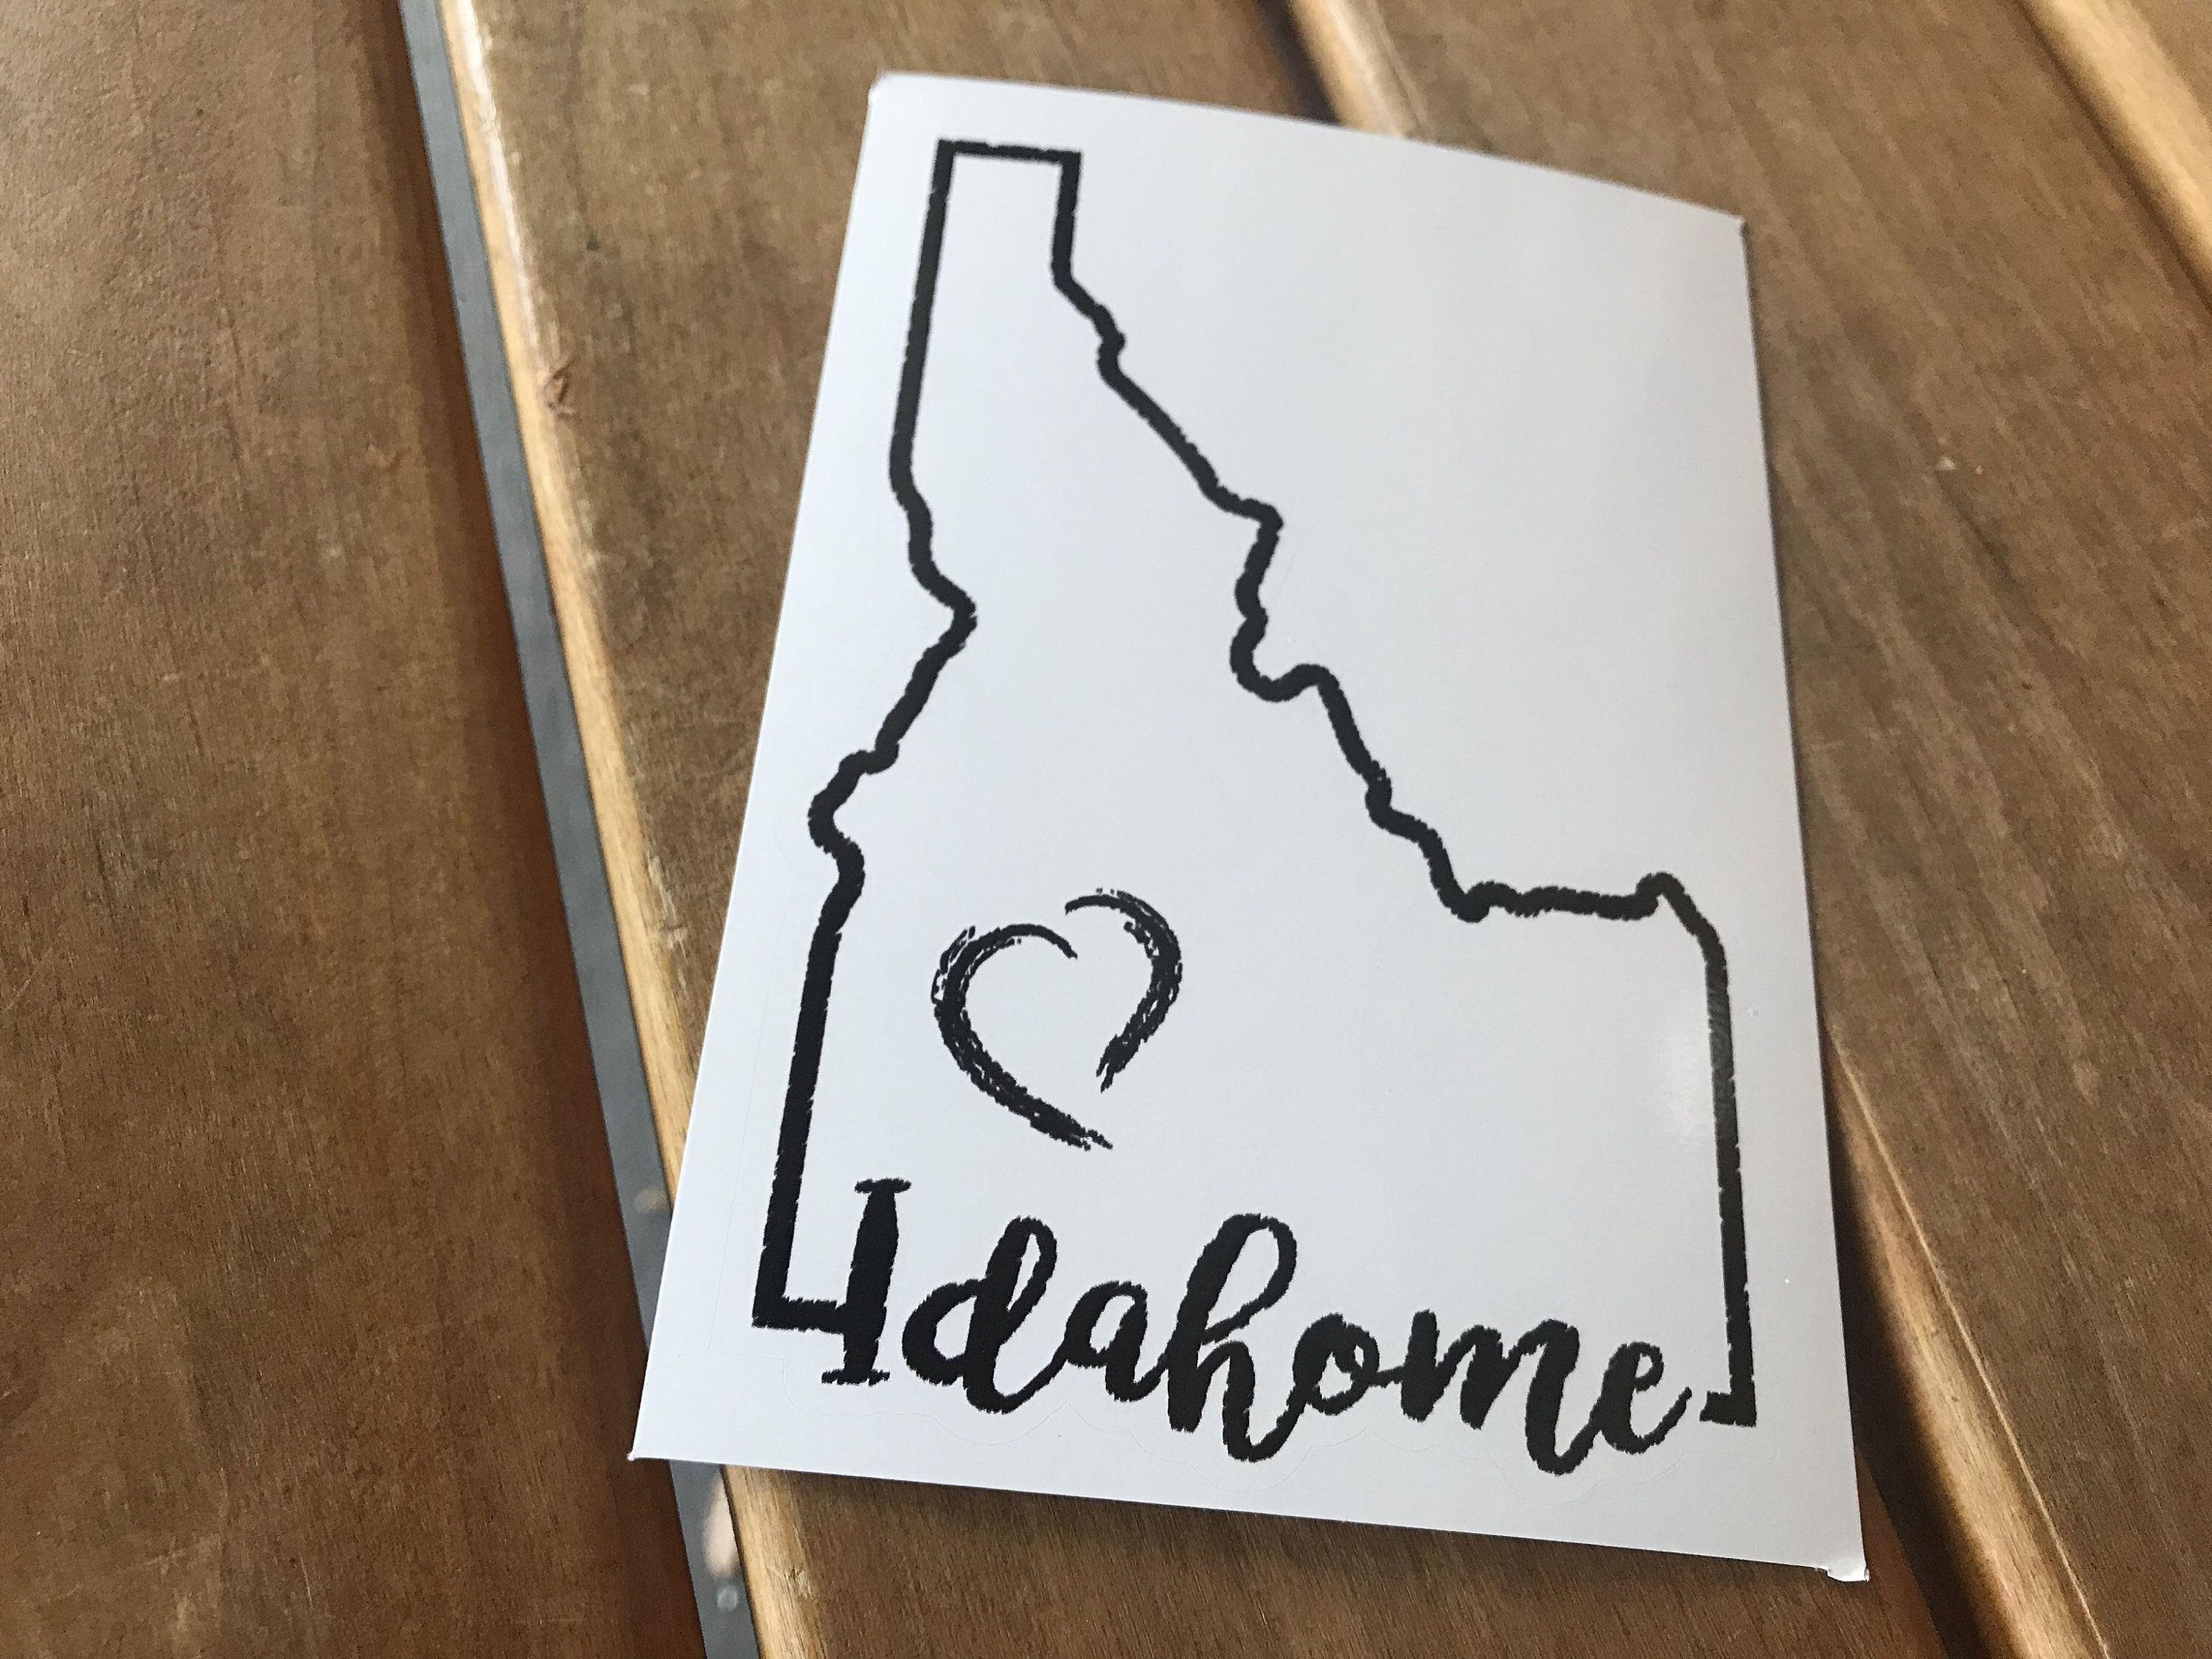 Excited To Share This Item From My Etsy Shop Idaho Decal Idahome Bumper Sticker Idahome Idaho Car Stickers Idaho Souvenir Bumper Stickers Idaho Idahome [ 2250 x 3000 Pixel ]